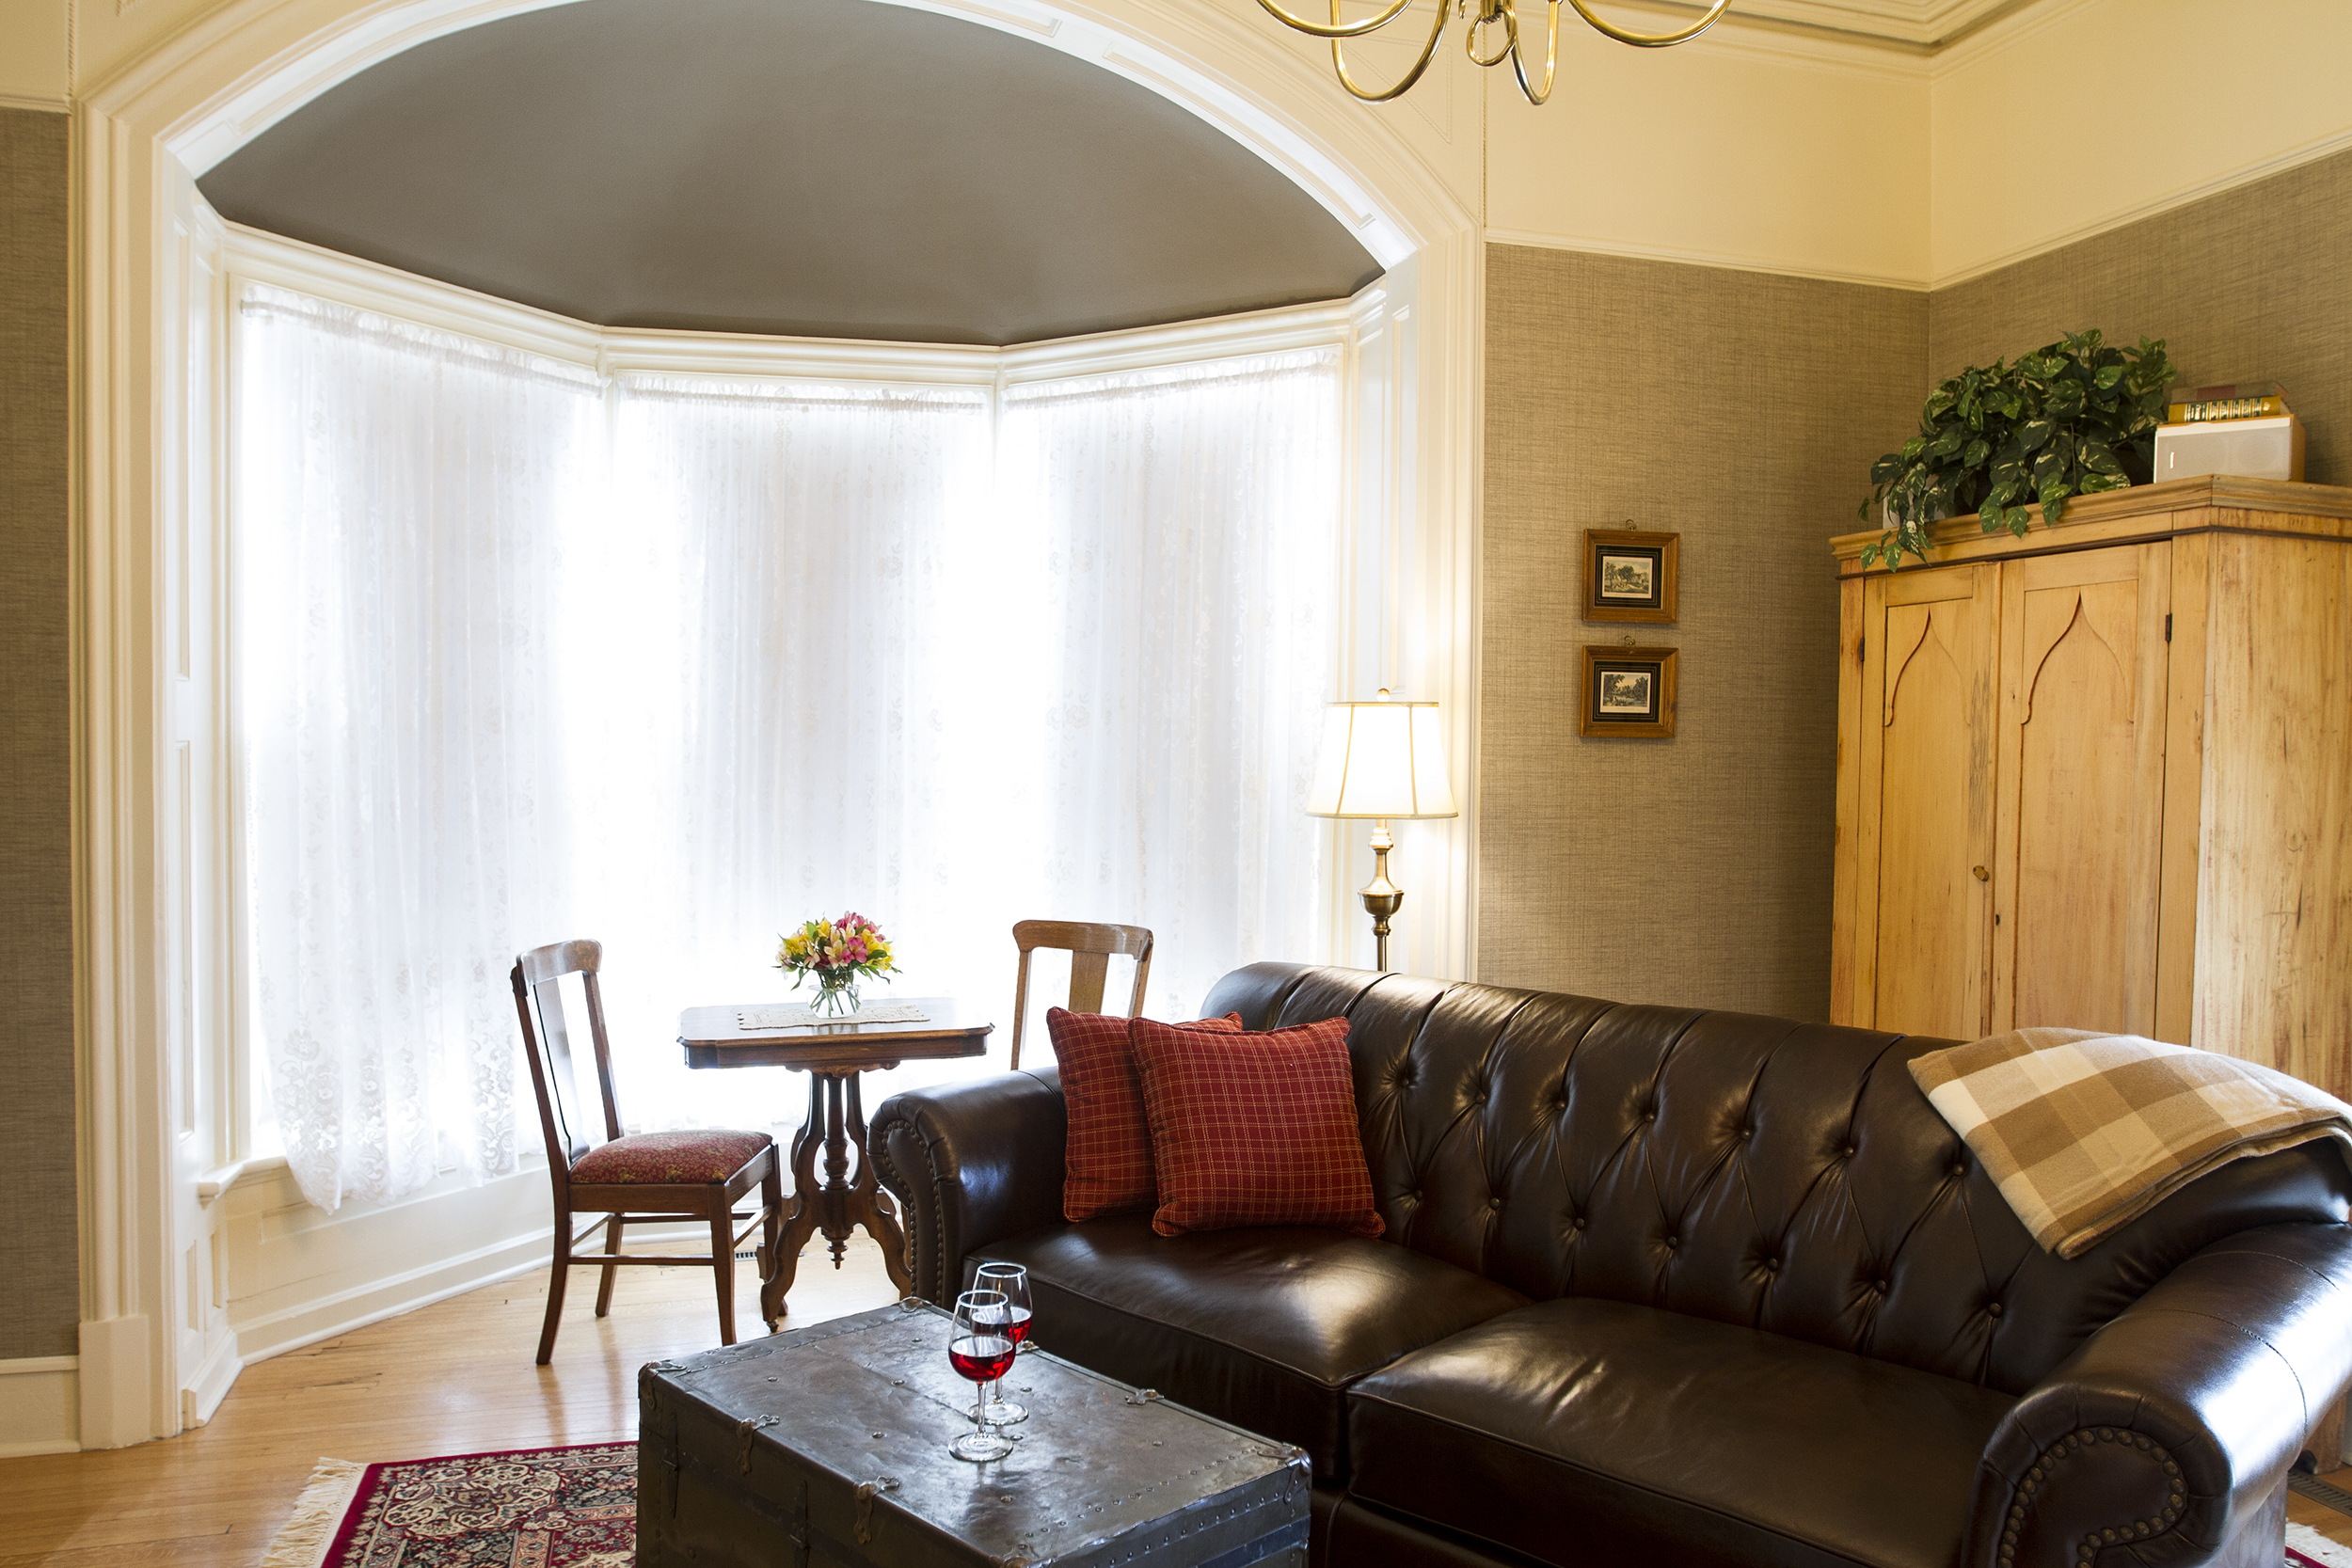 Dining area in bay window